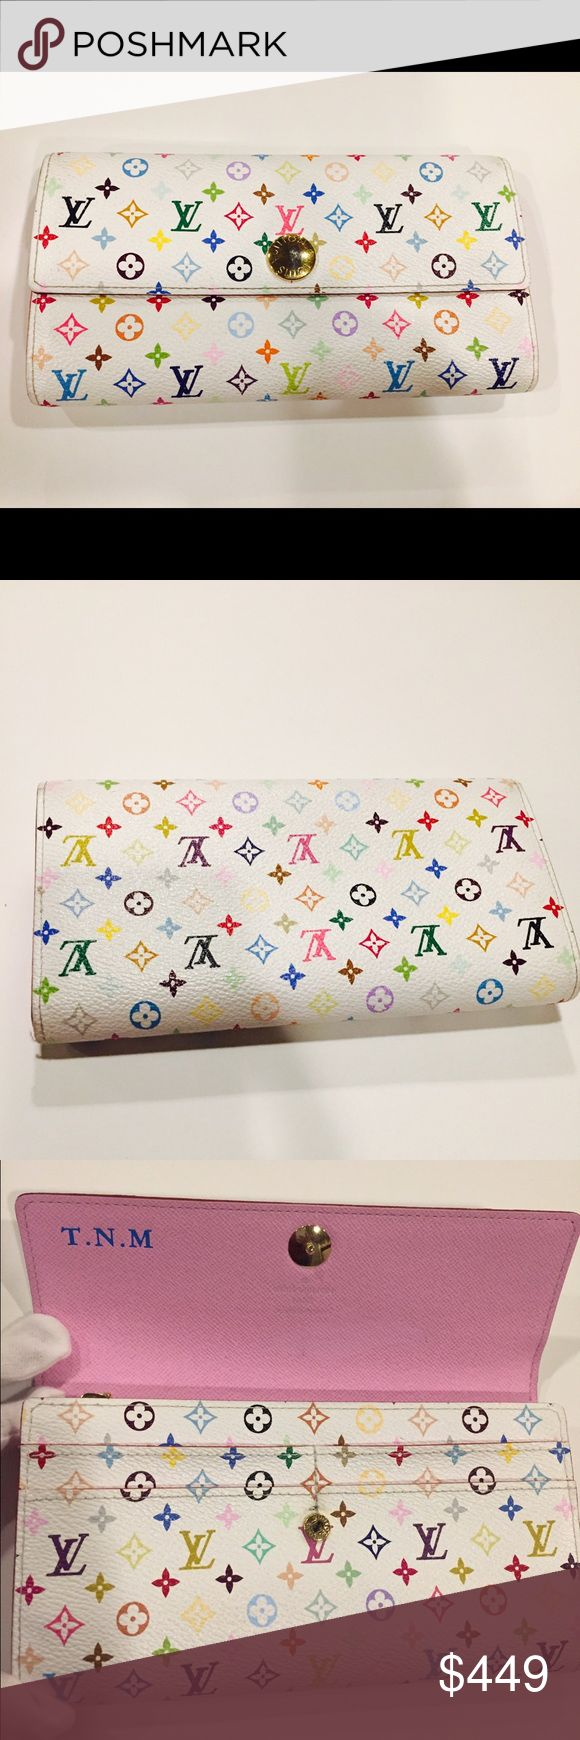 Spotted while shopping on Poshmark: Authentic Louis Vuitton Multicolor Sarah Wallet! #poshmark #fashion #shopping #style #Louis Vuitton #Handbags